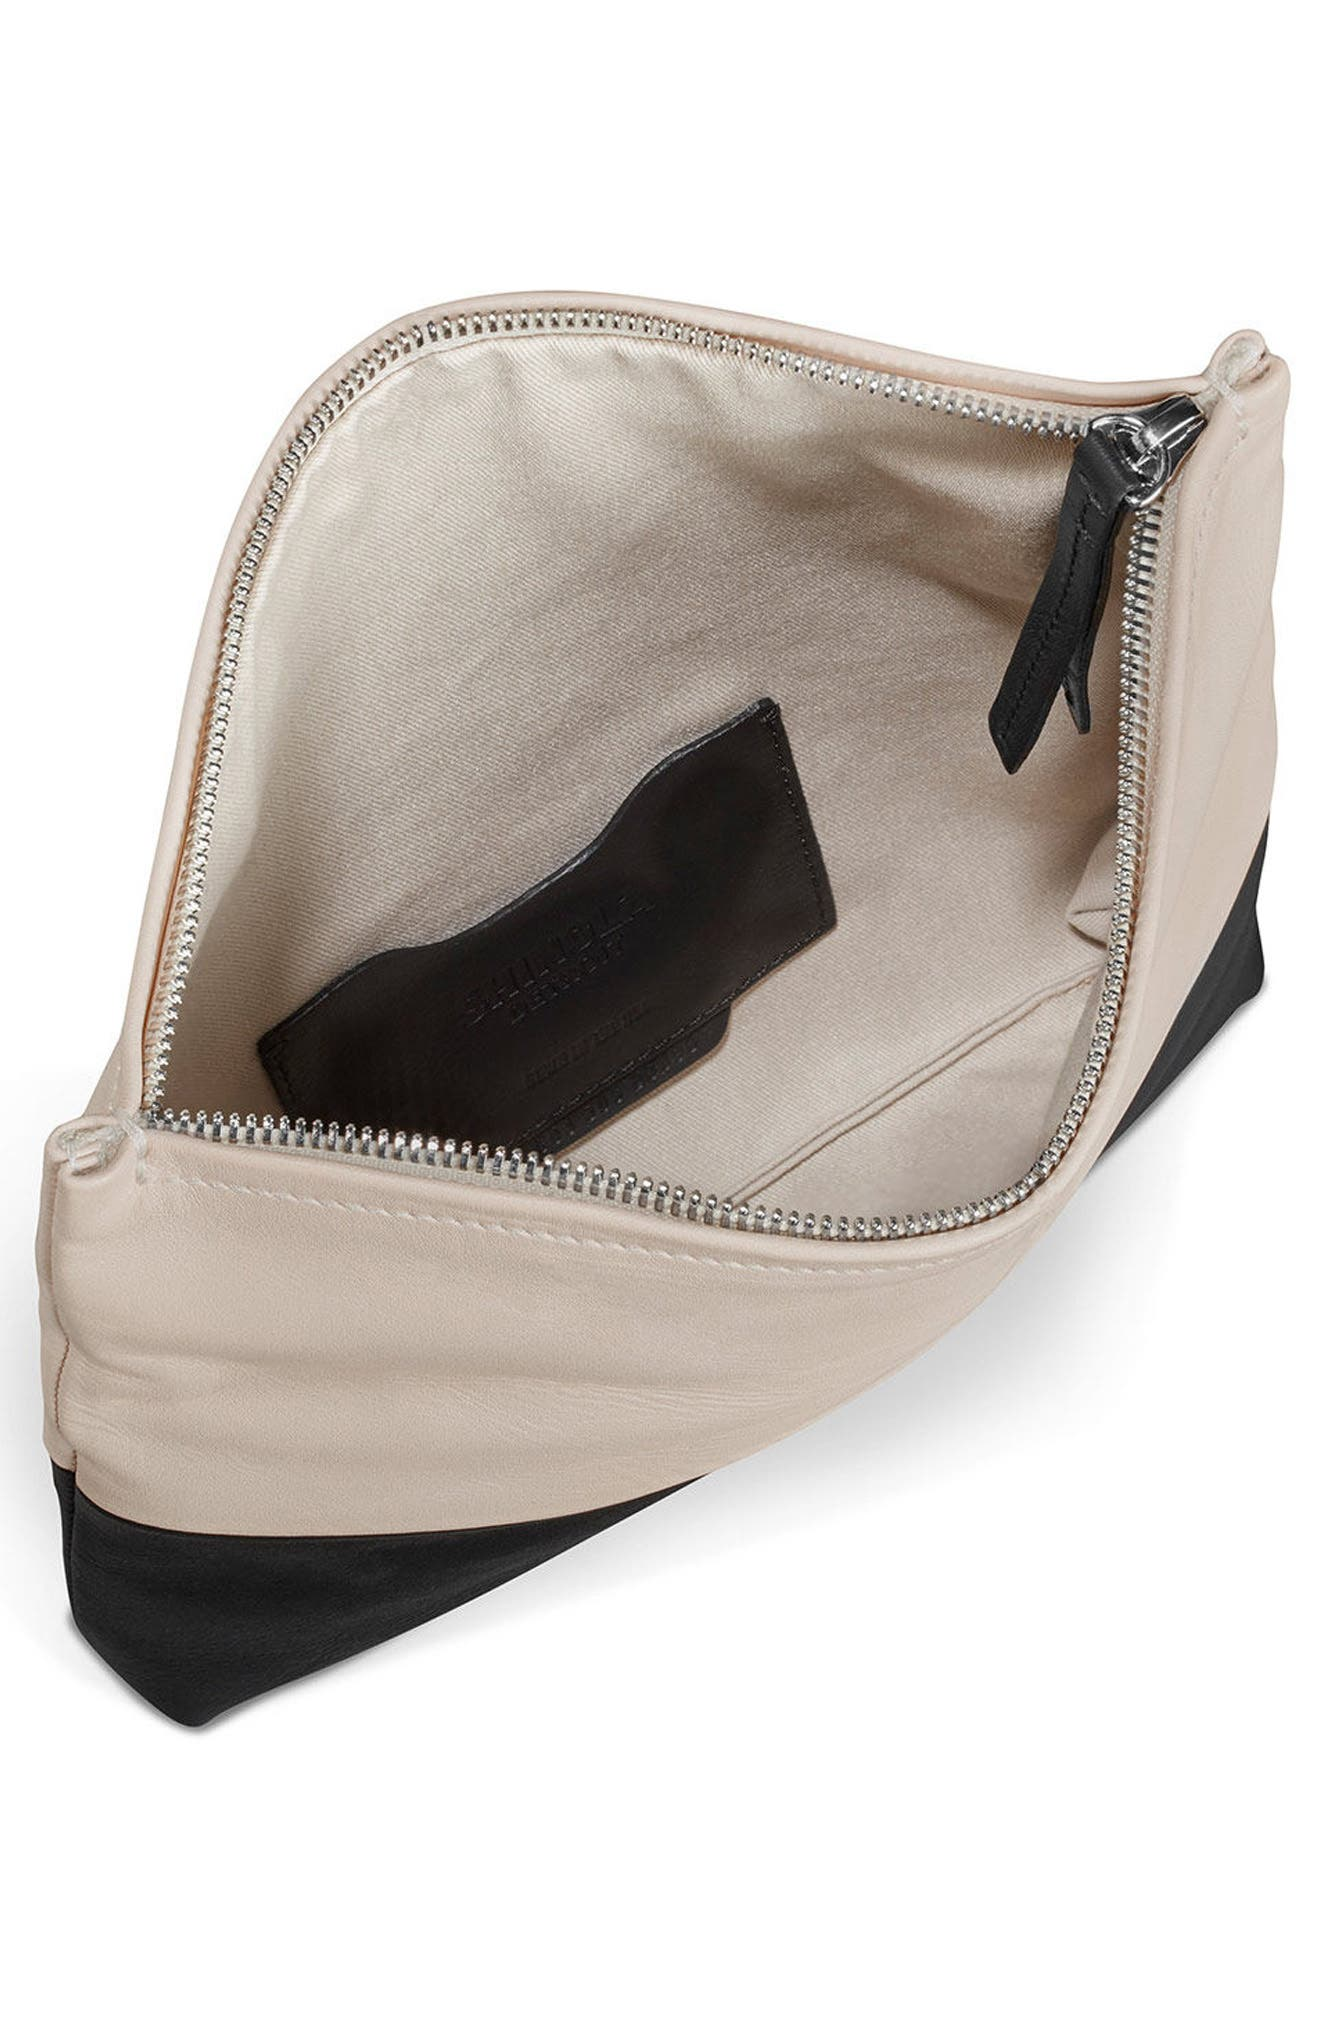 Birdy Leather Foldover Clutch,                             Alternate thumbnail 3, color,                             Soft Blush Black